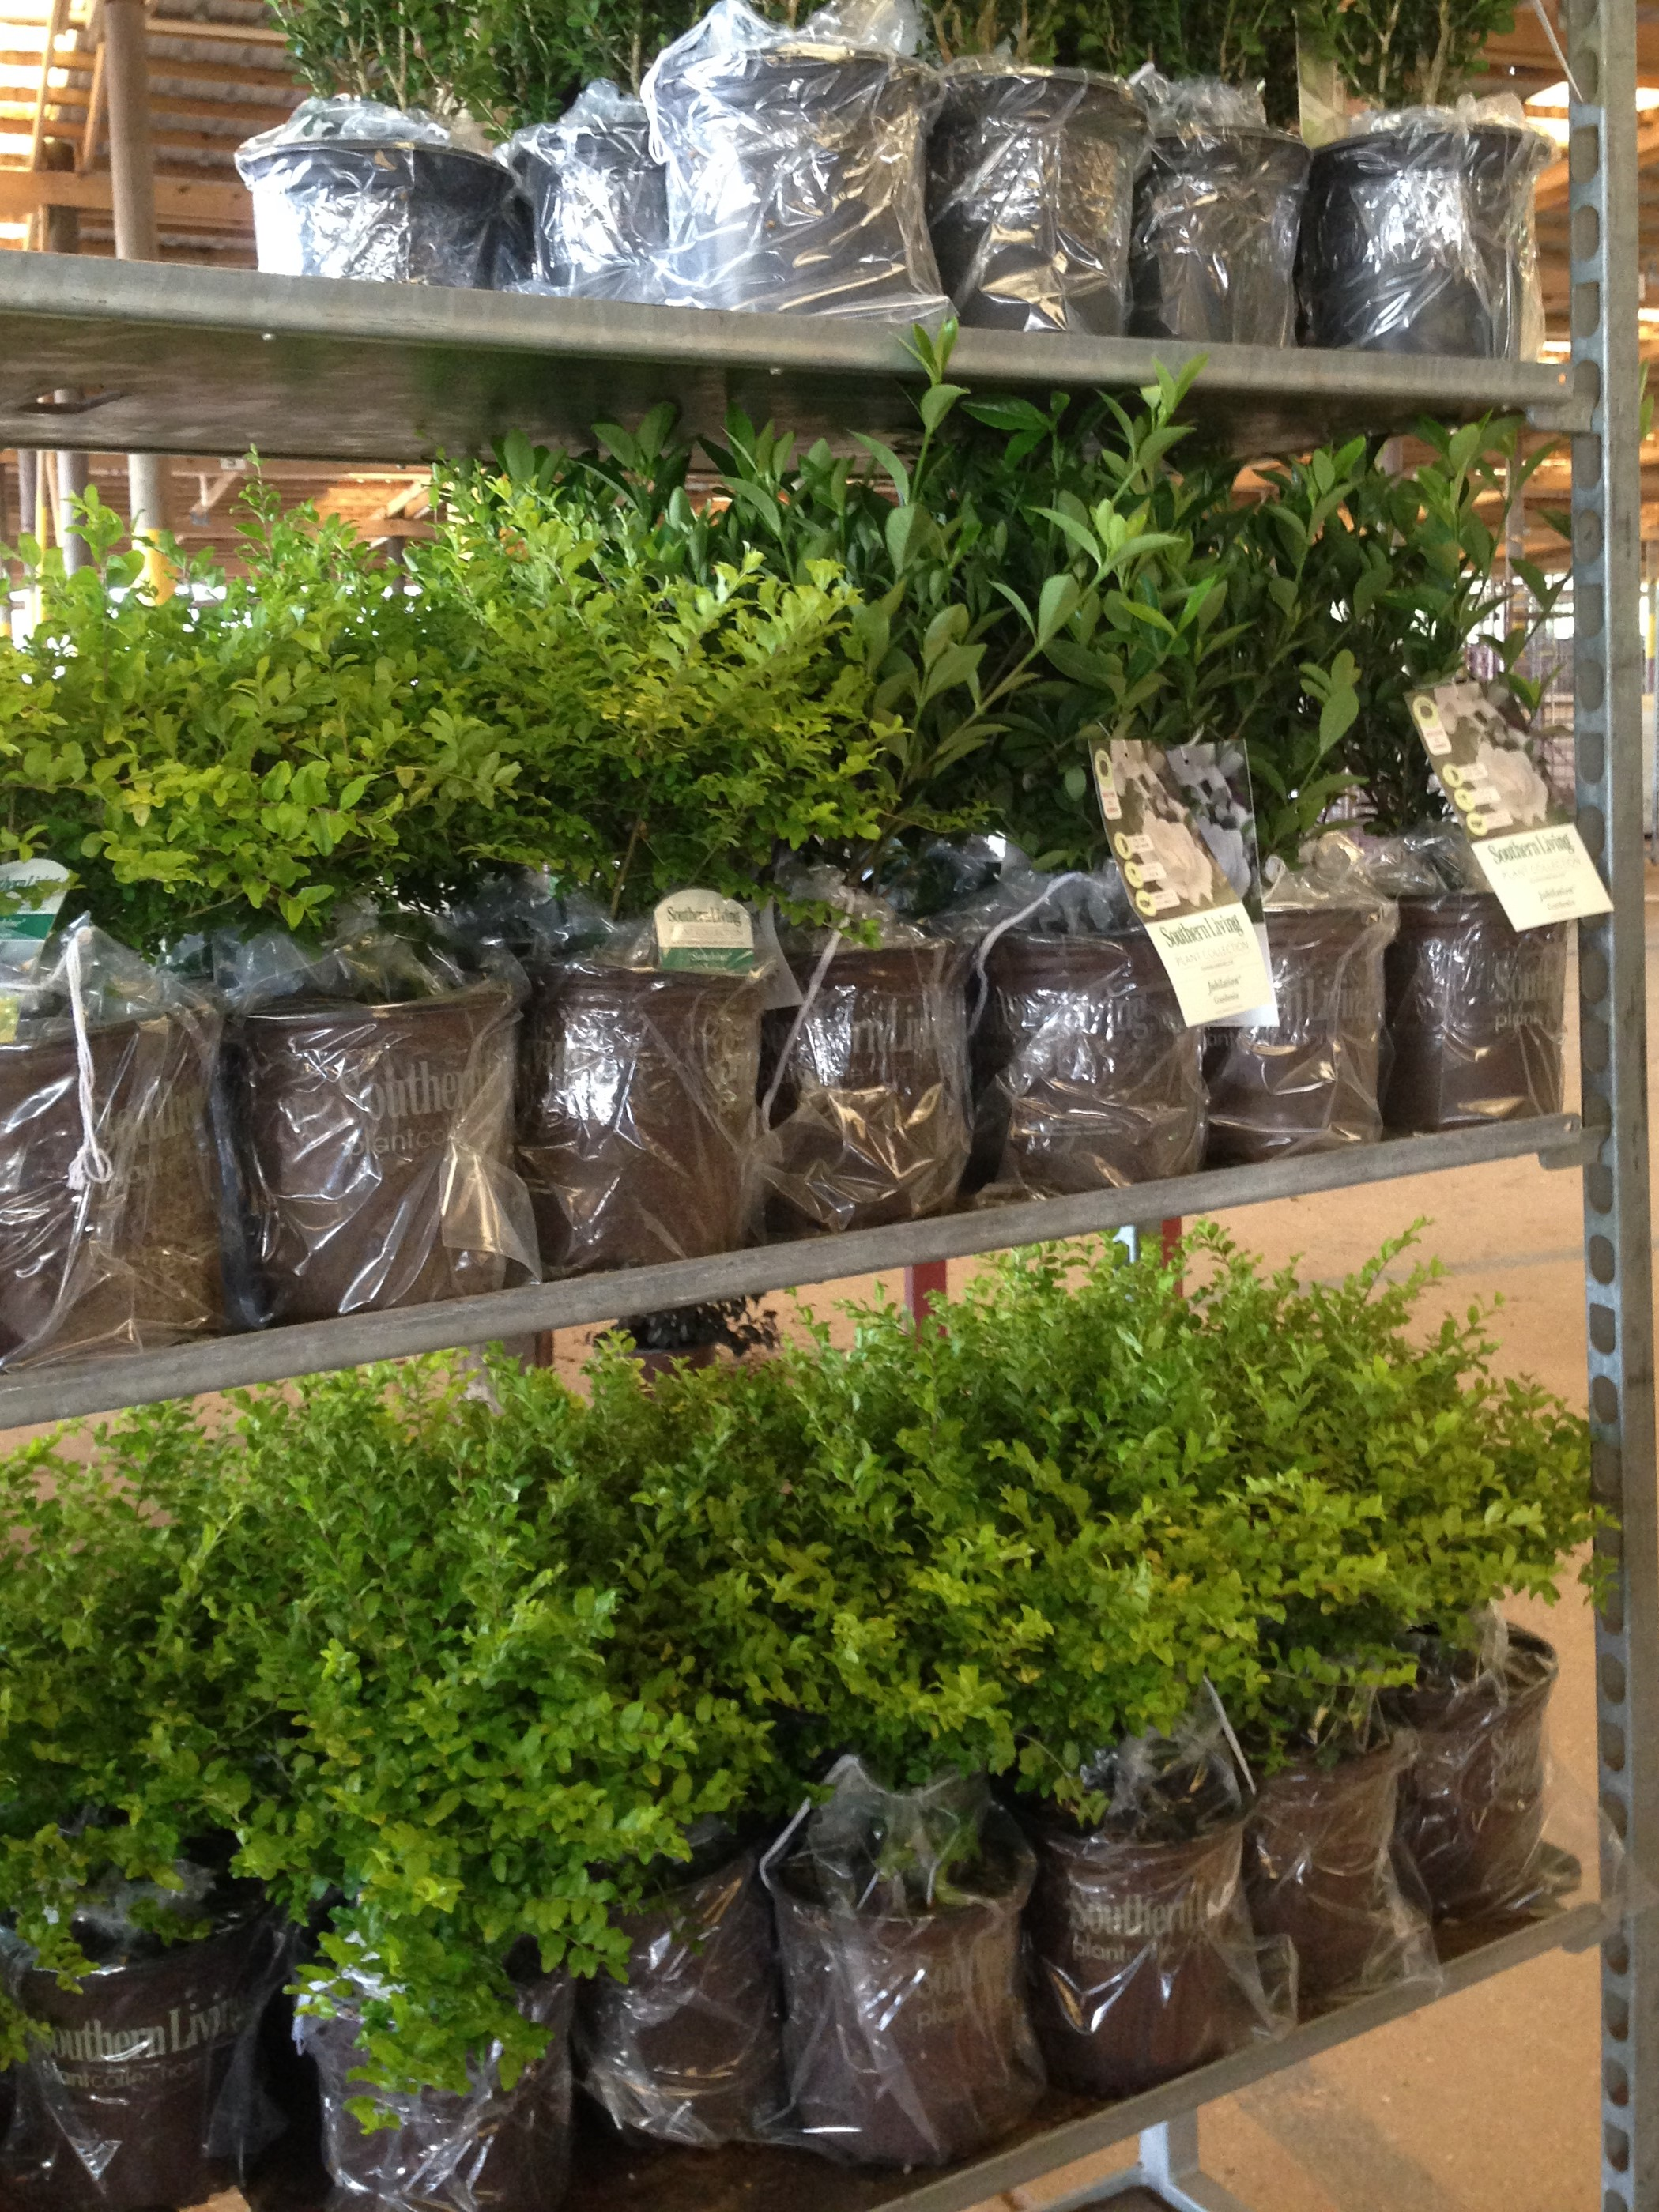 rack-full-of-plants-ready-to-ship-out.jpg